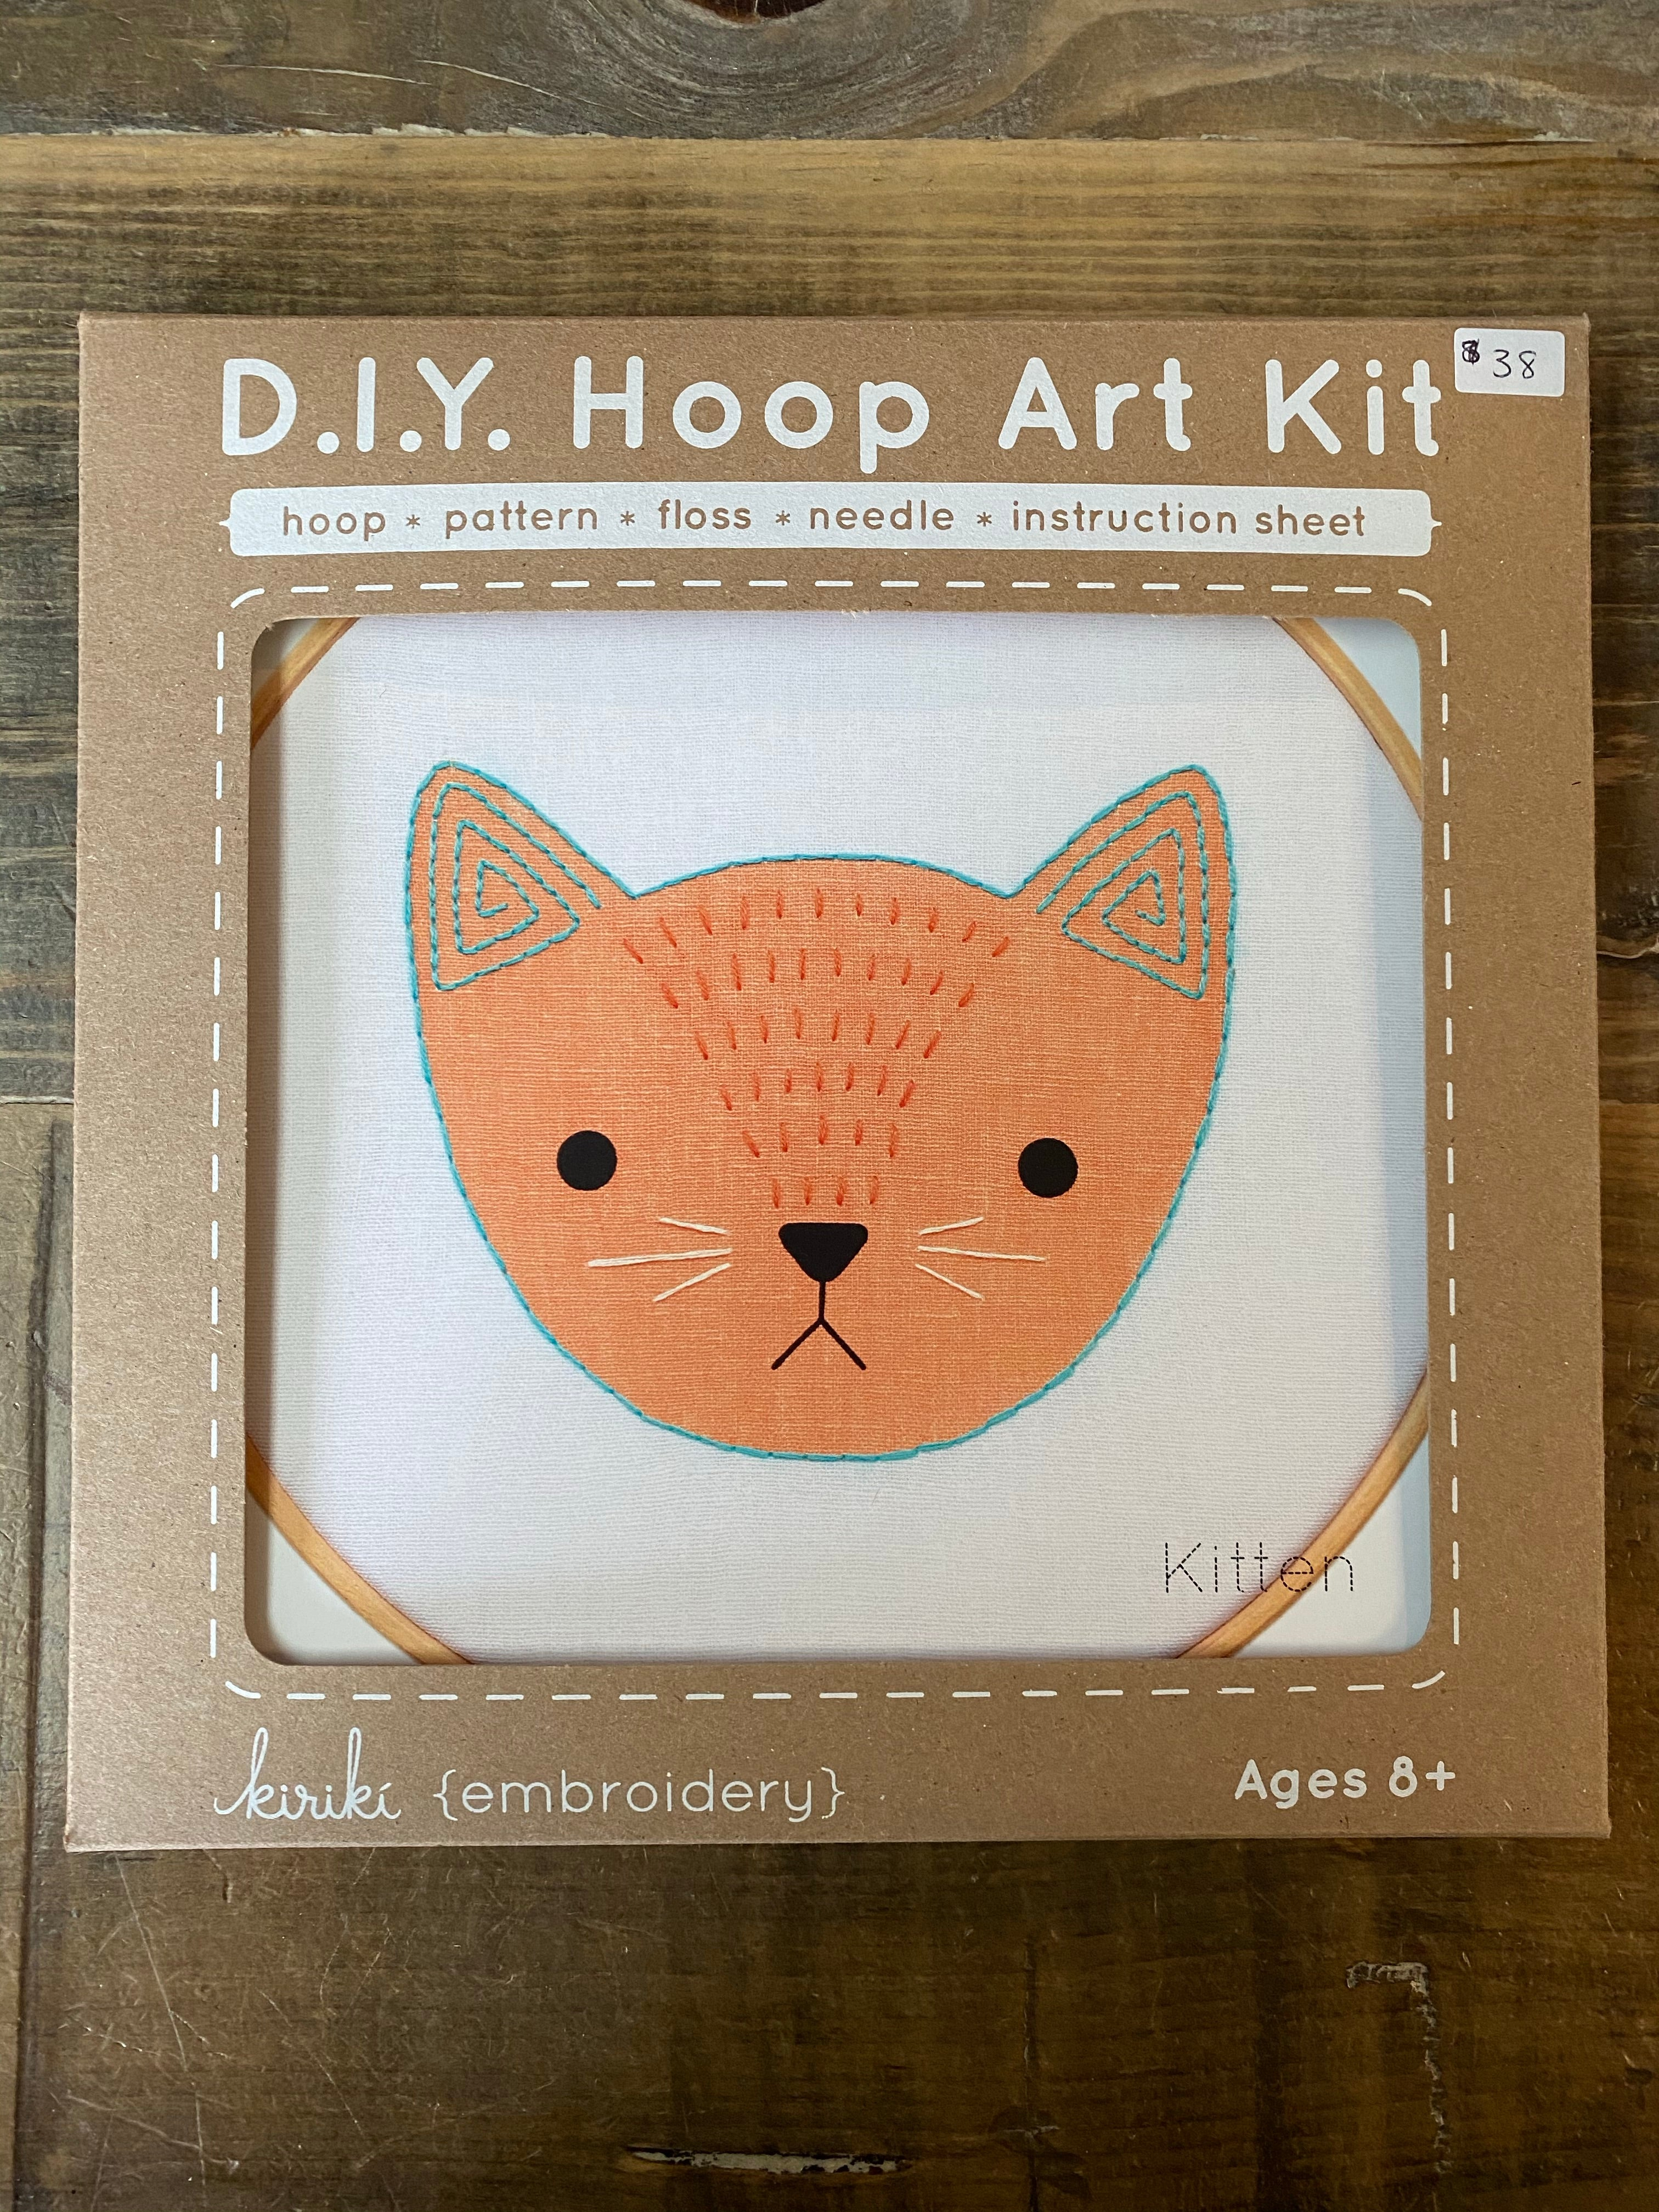 D.I.Y. Hoop Art Kit